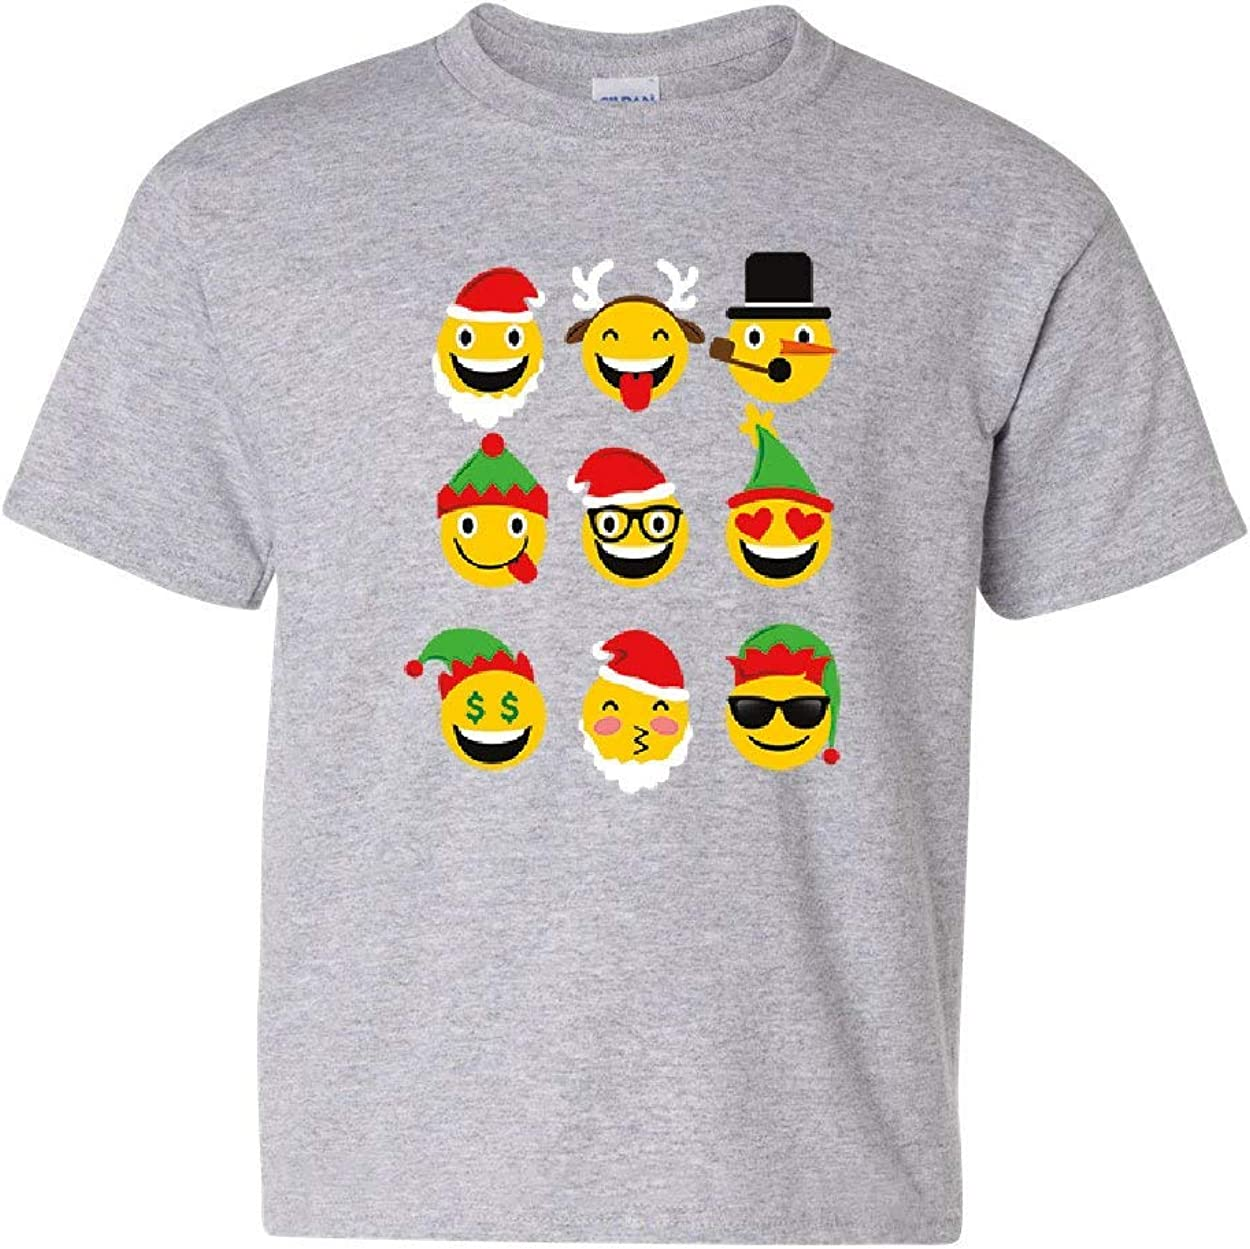 Cute Christmas Emojis Youth T-Shirt Xmas Smiley Faces Rudolph Holiday Kids Tee